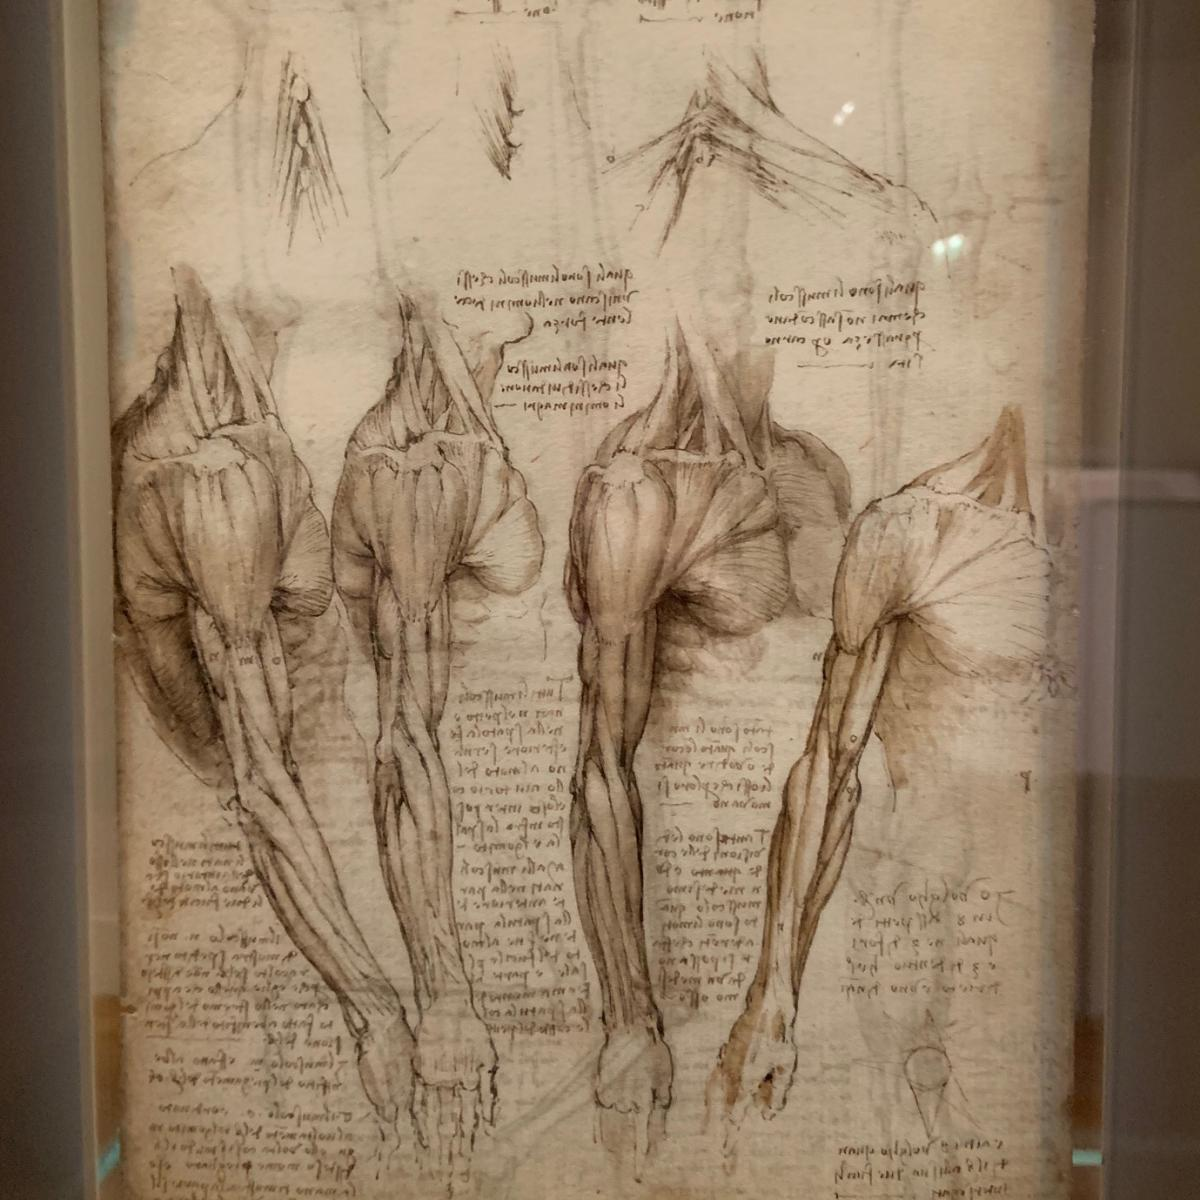 Leonardo da Vinci made numerous illustrations and sketches as part of an intensive study of human anatomy.